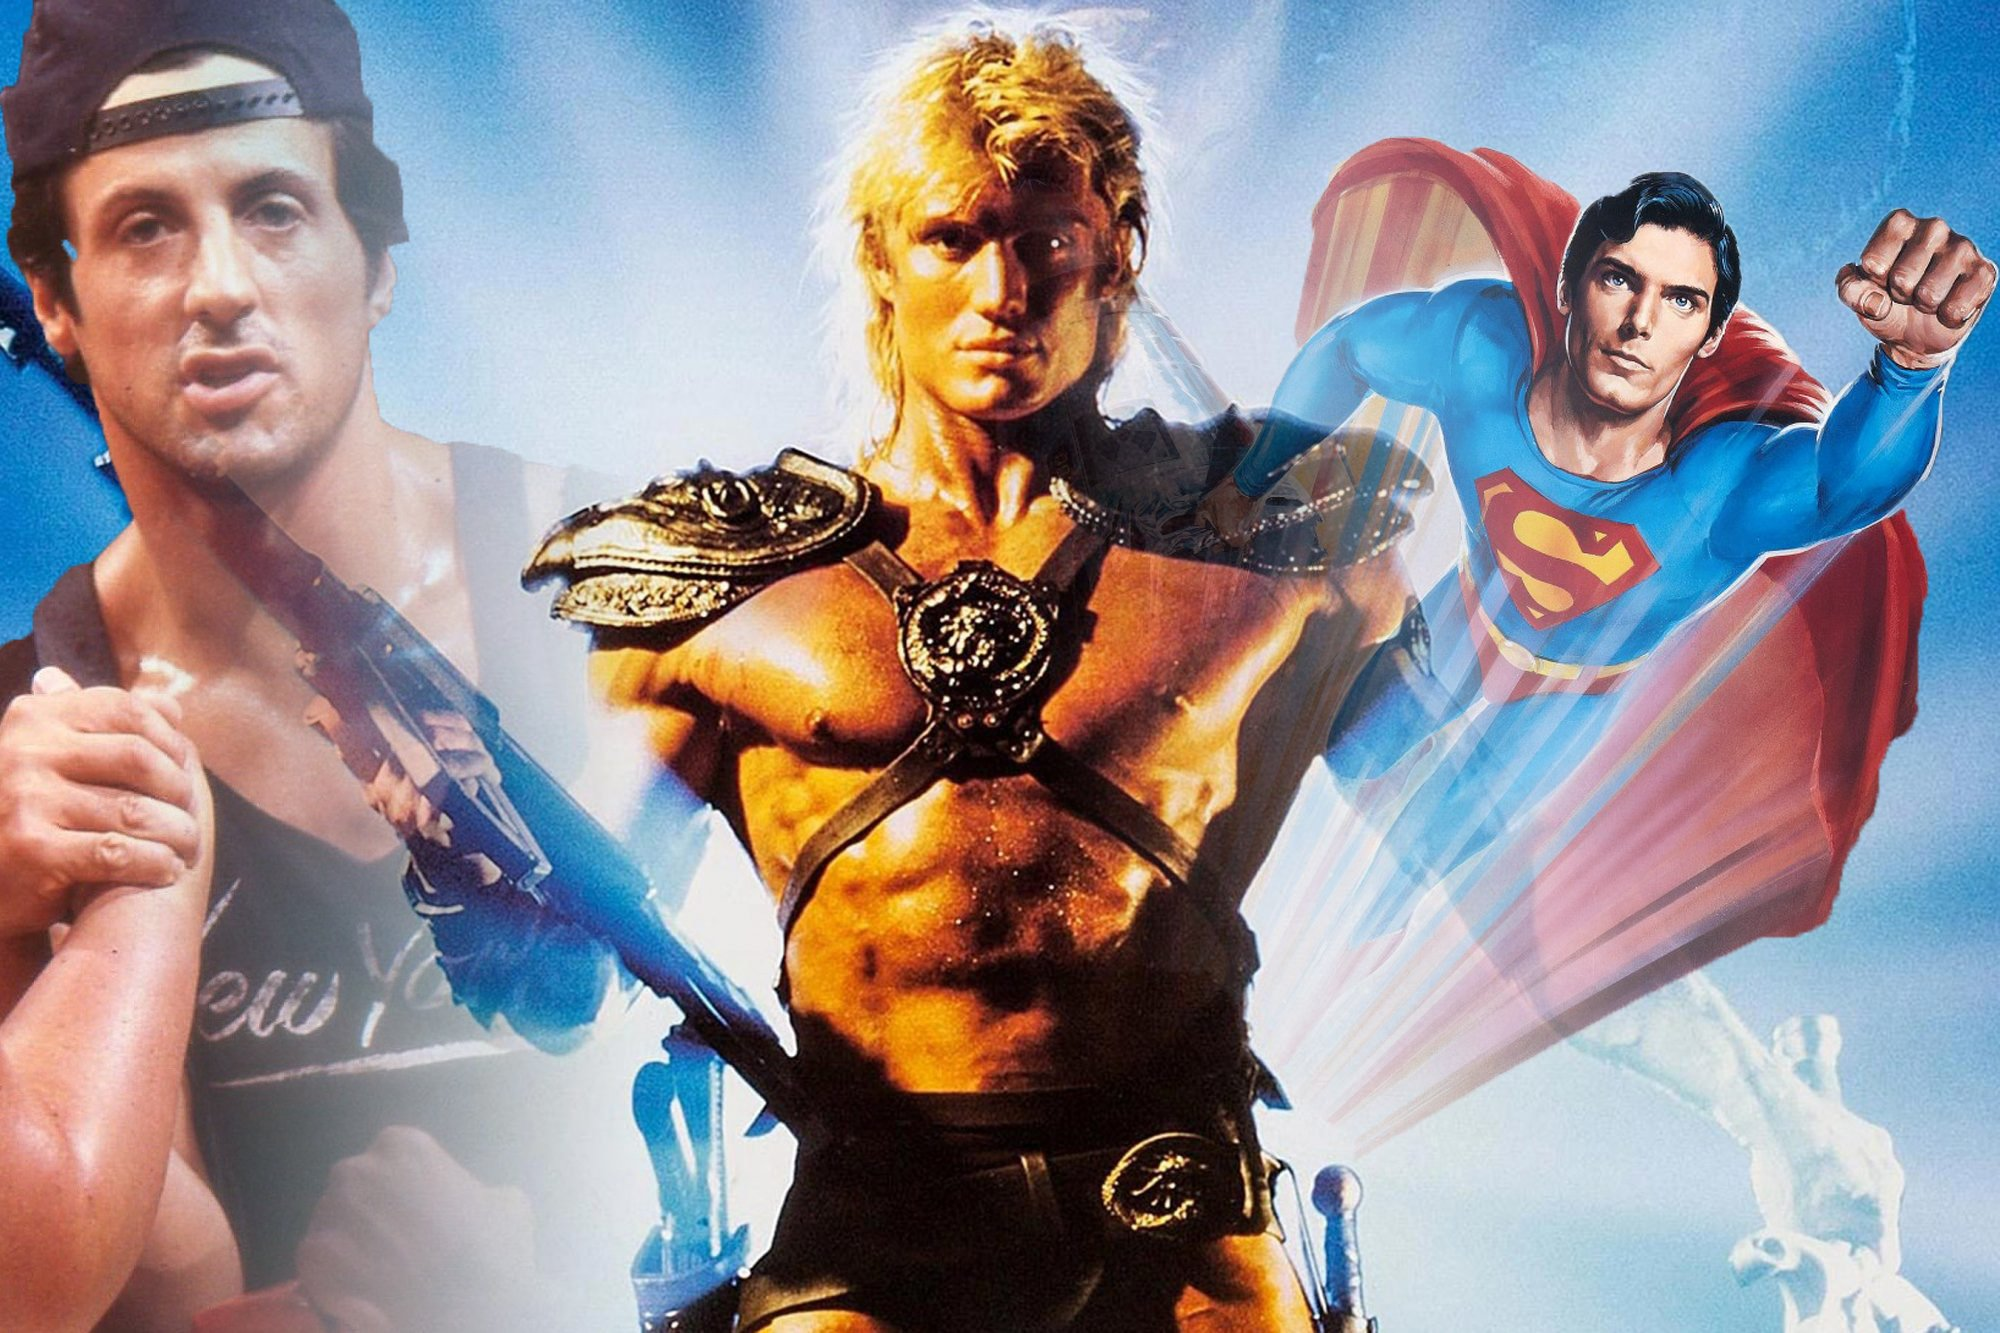 Podtoid asks which film is worse: Superman IV, Over the Top, or Masters of the Universe? thumbnail